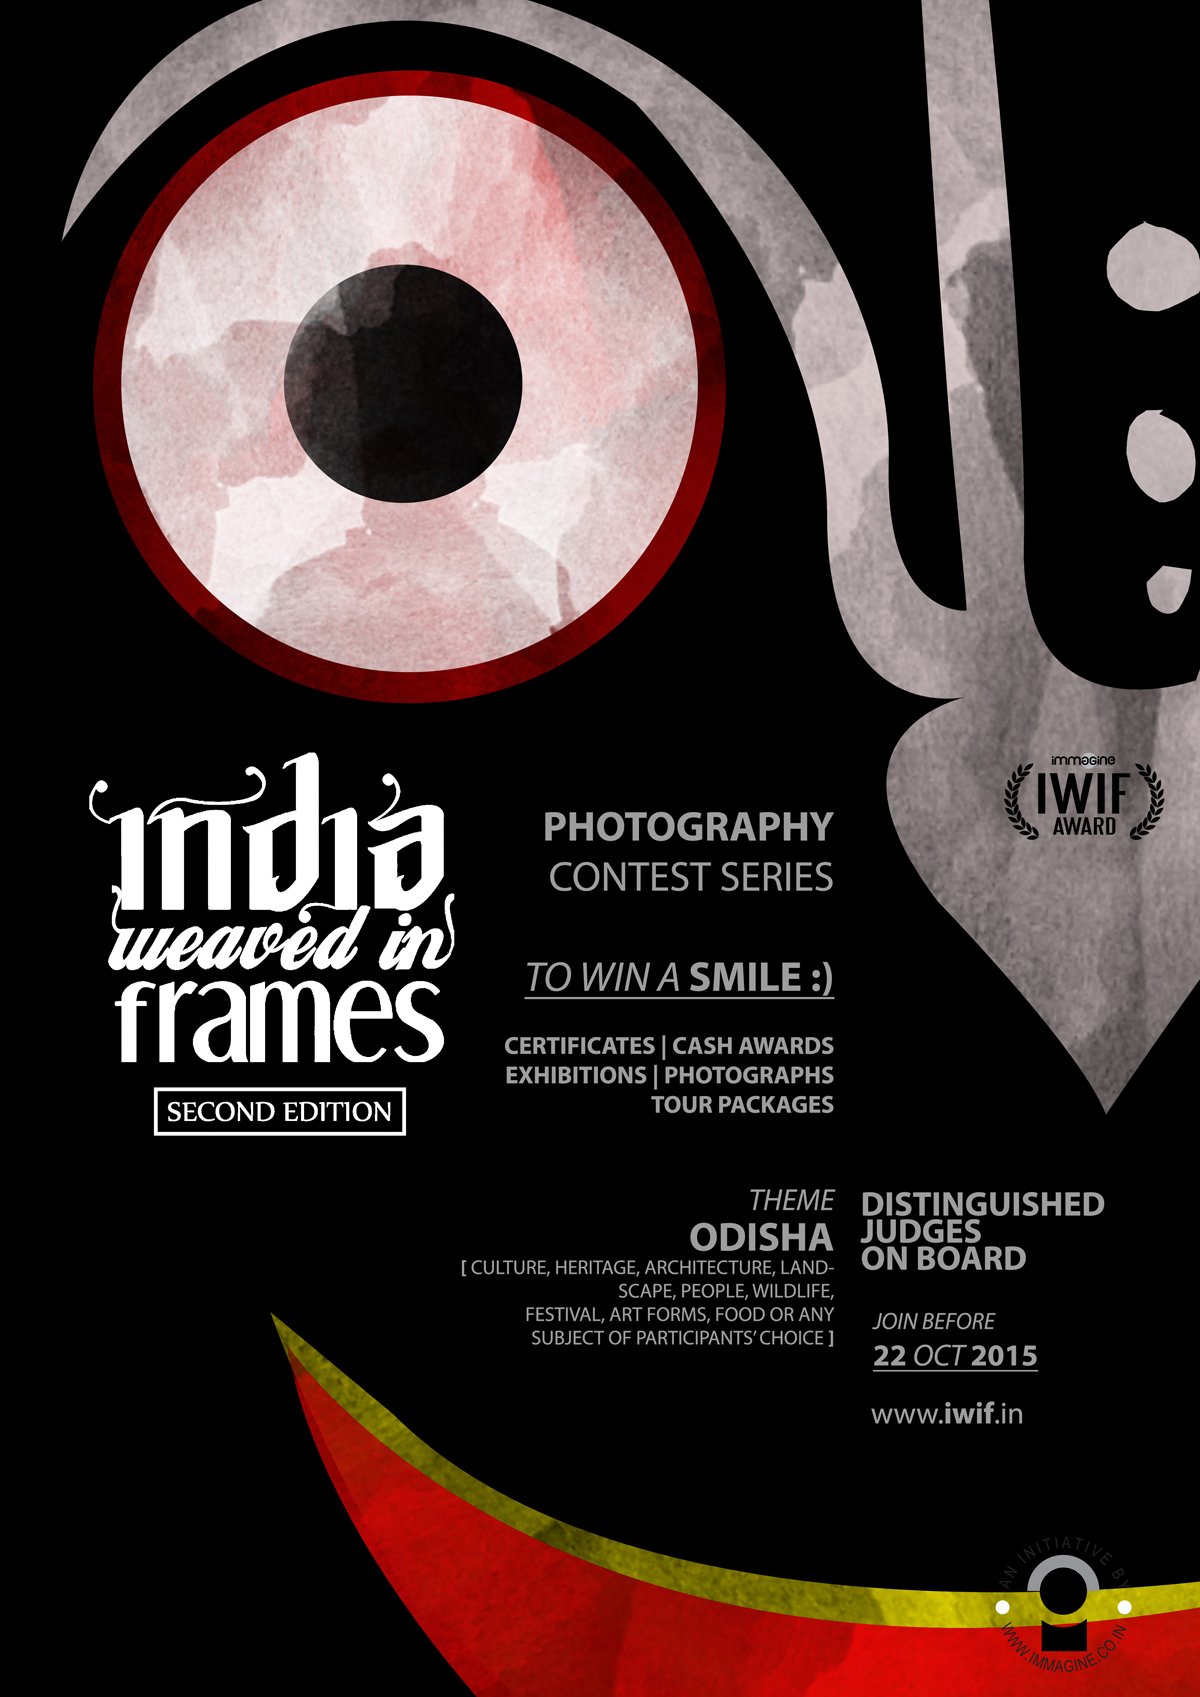 Calling All Odisha Photographers For India Weaved In Frames